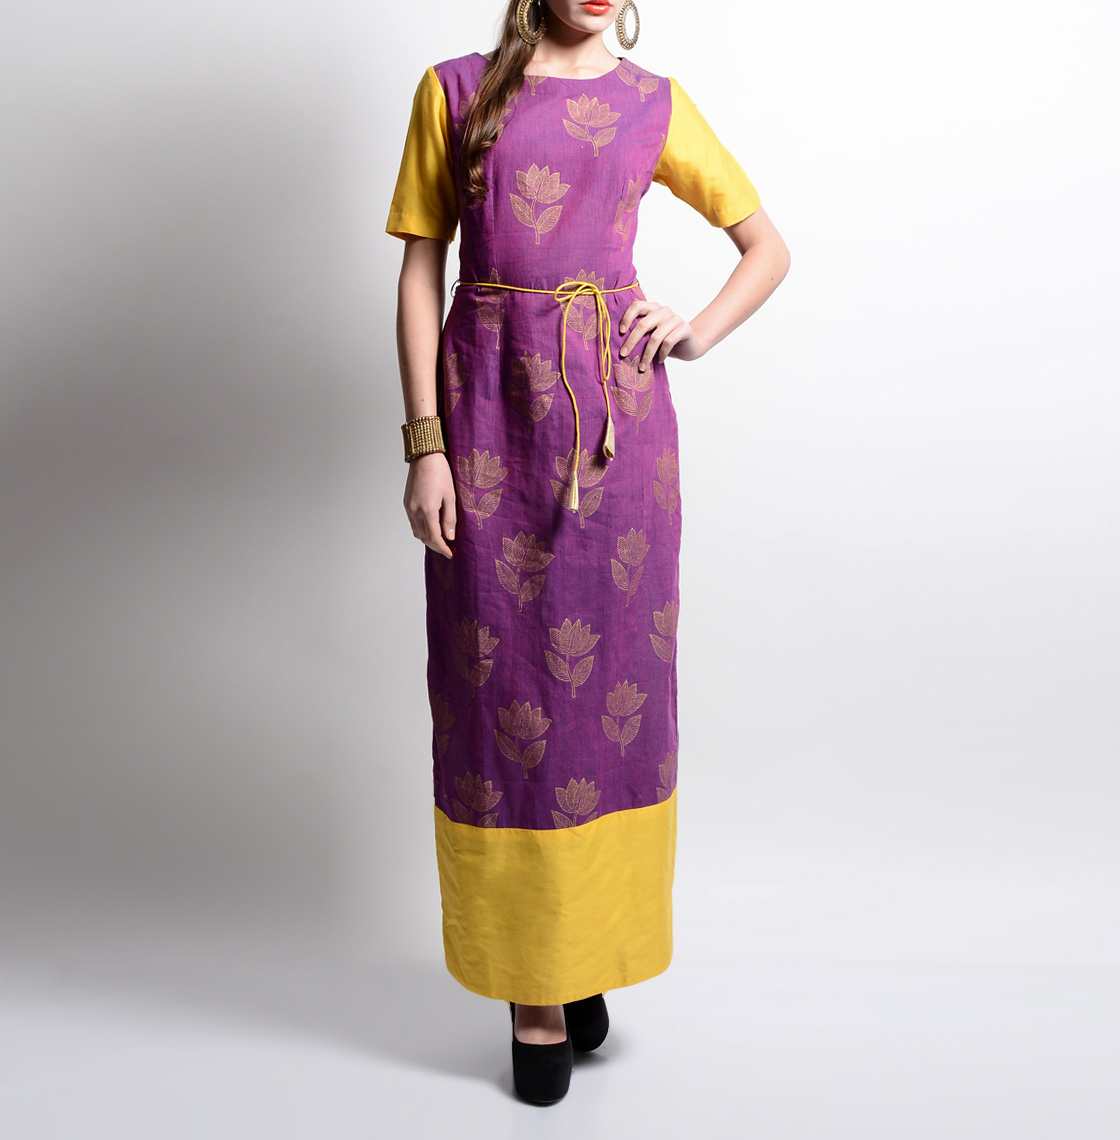 Lotus printed maxi dress